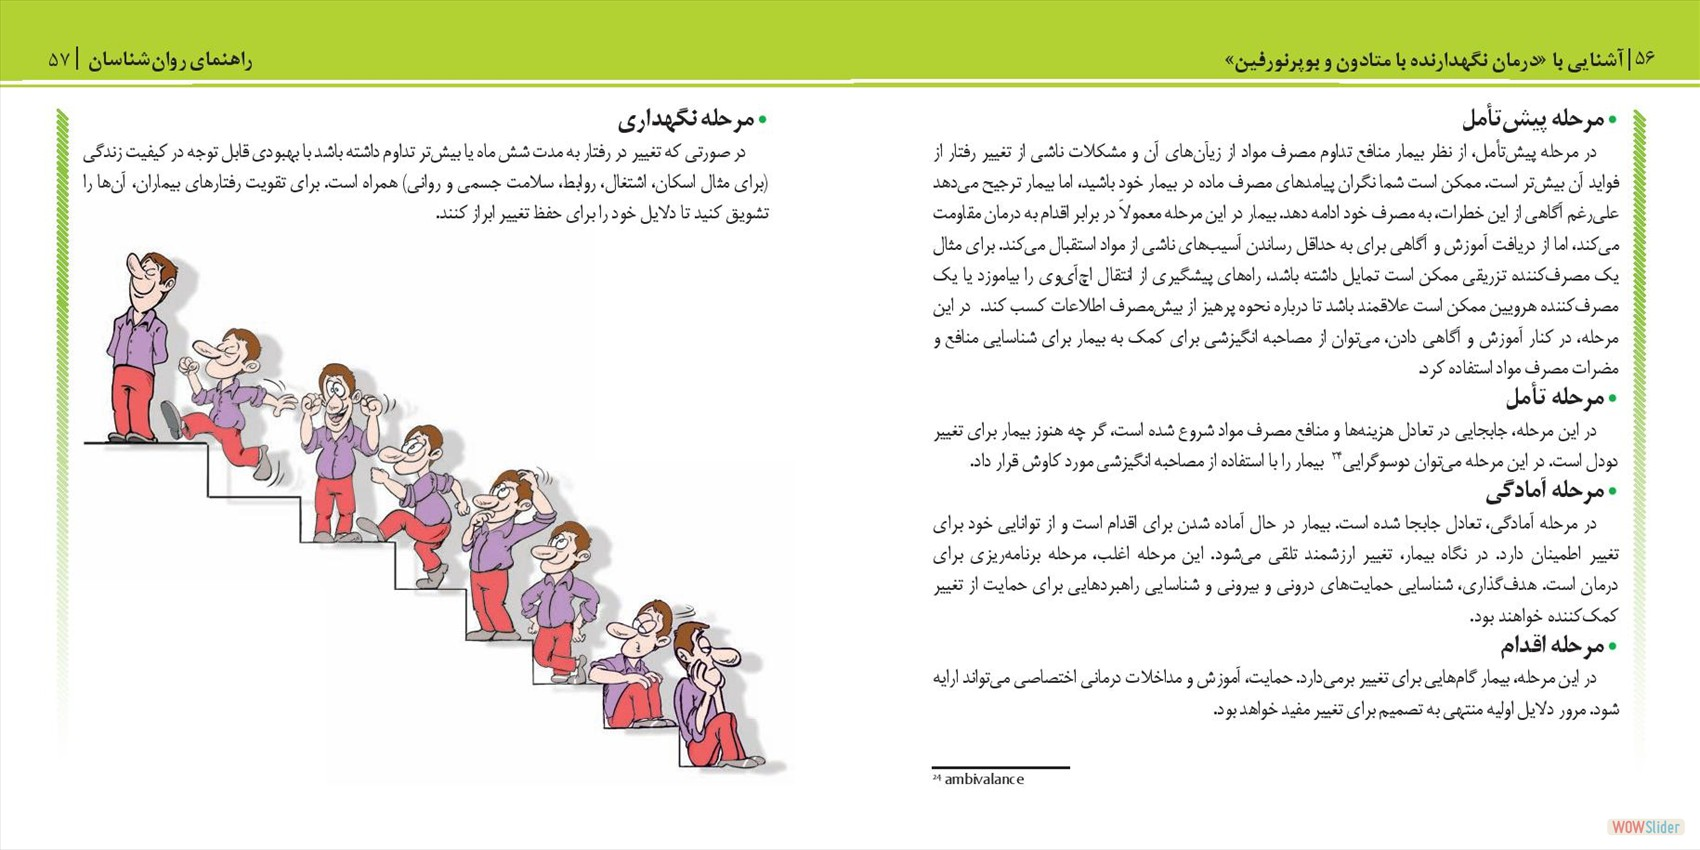 Psychologist_Booklet_farsi_low-page-035